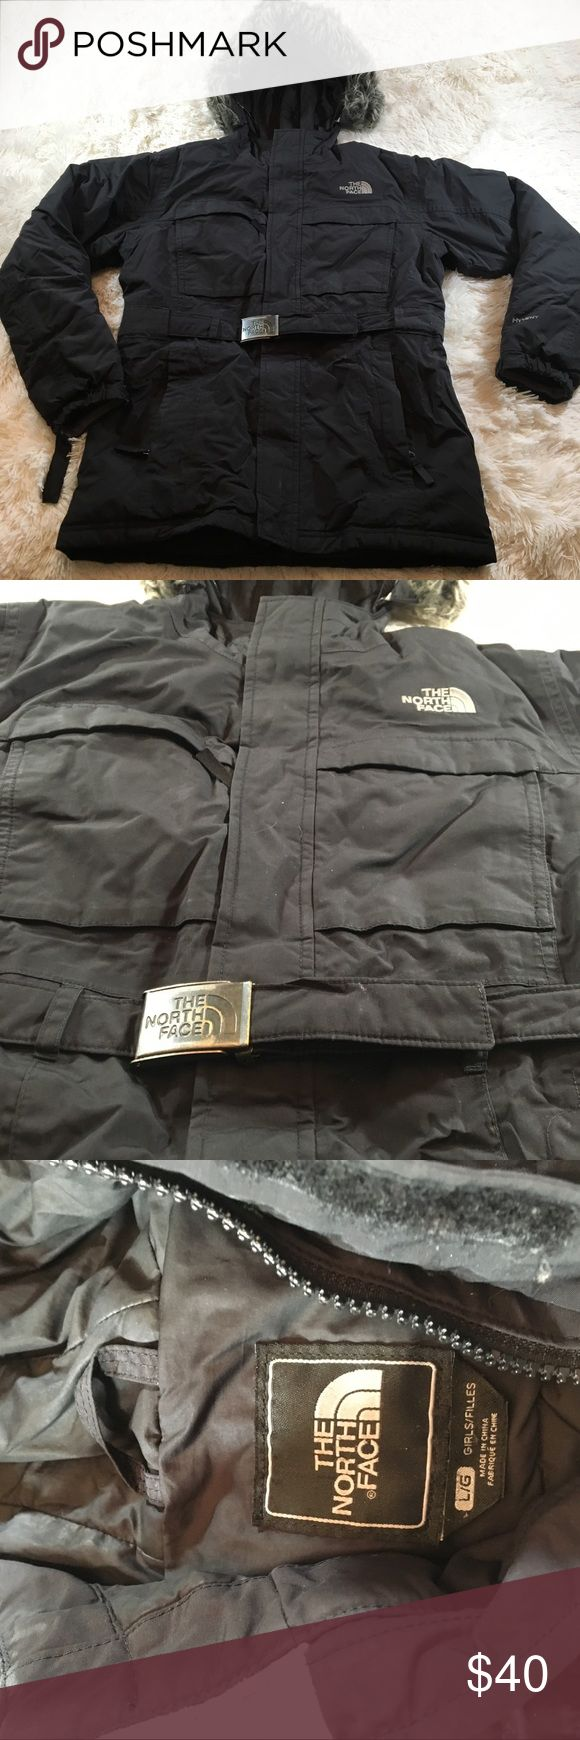 Girls The North Face winter jacket Girls kids The North Face winter jacket with locking belt and lining and removable fur on hood The North Face Jackets & Coats Puffers